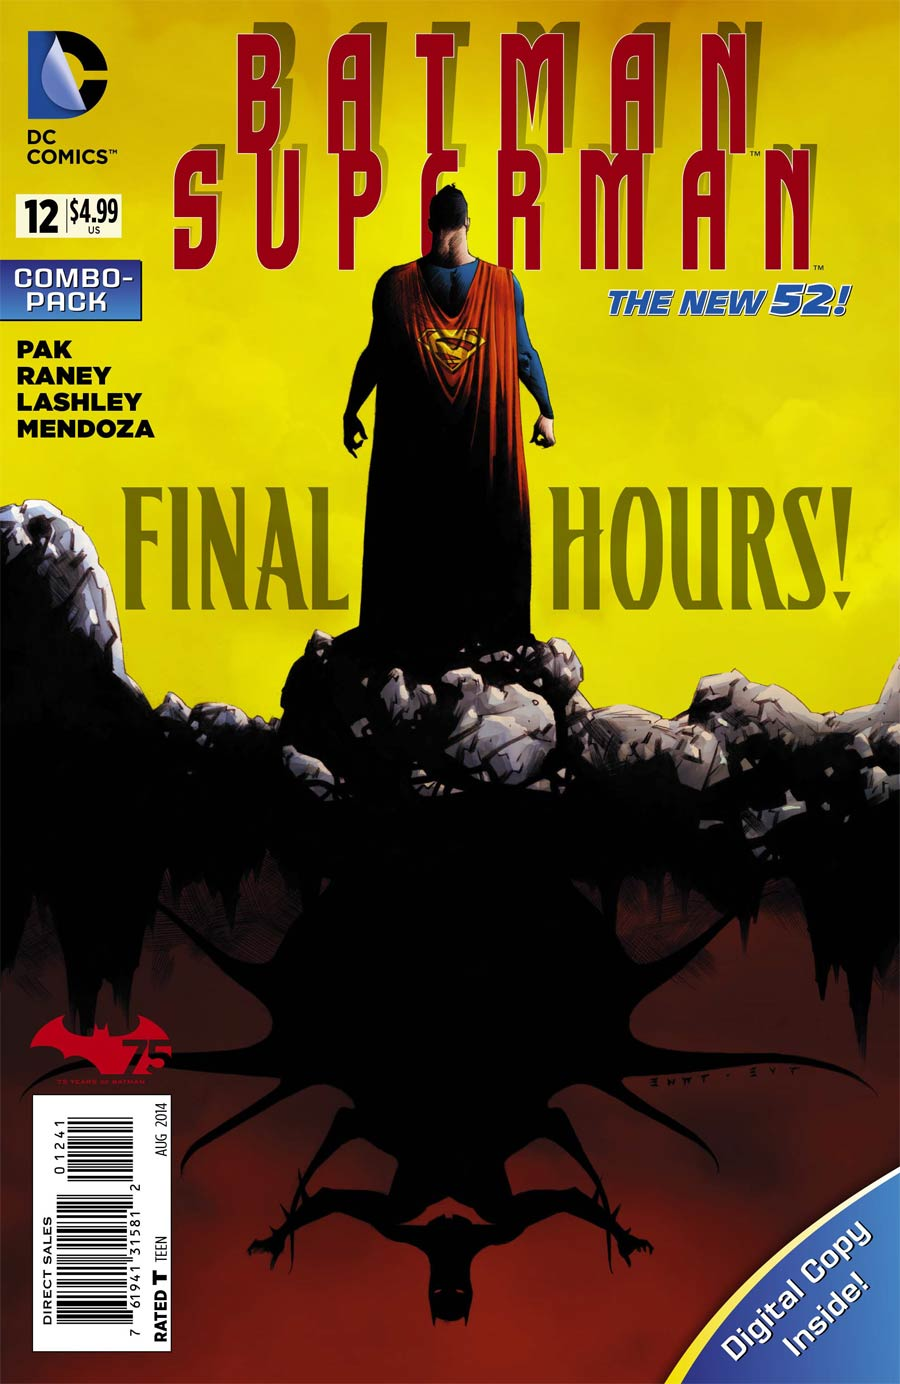 Batman Superman #12 Cover C Combo Pack With Polybag